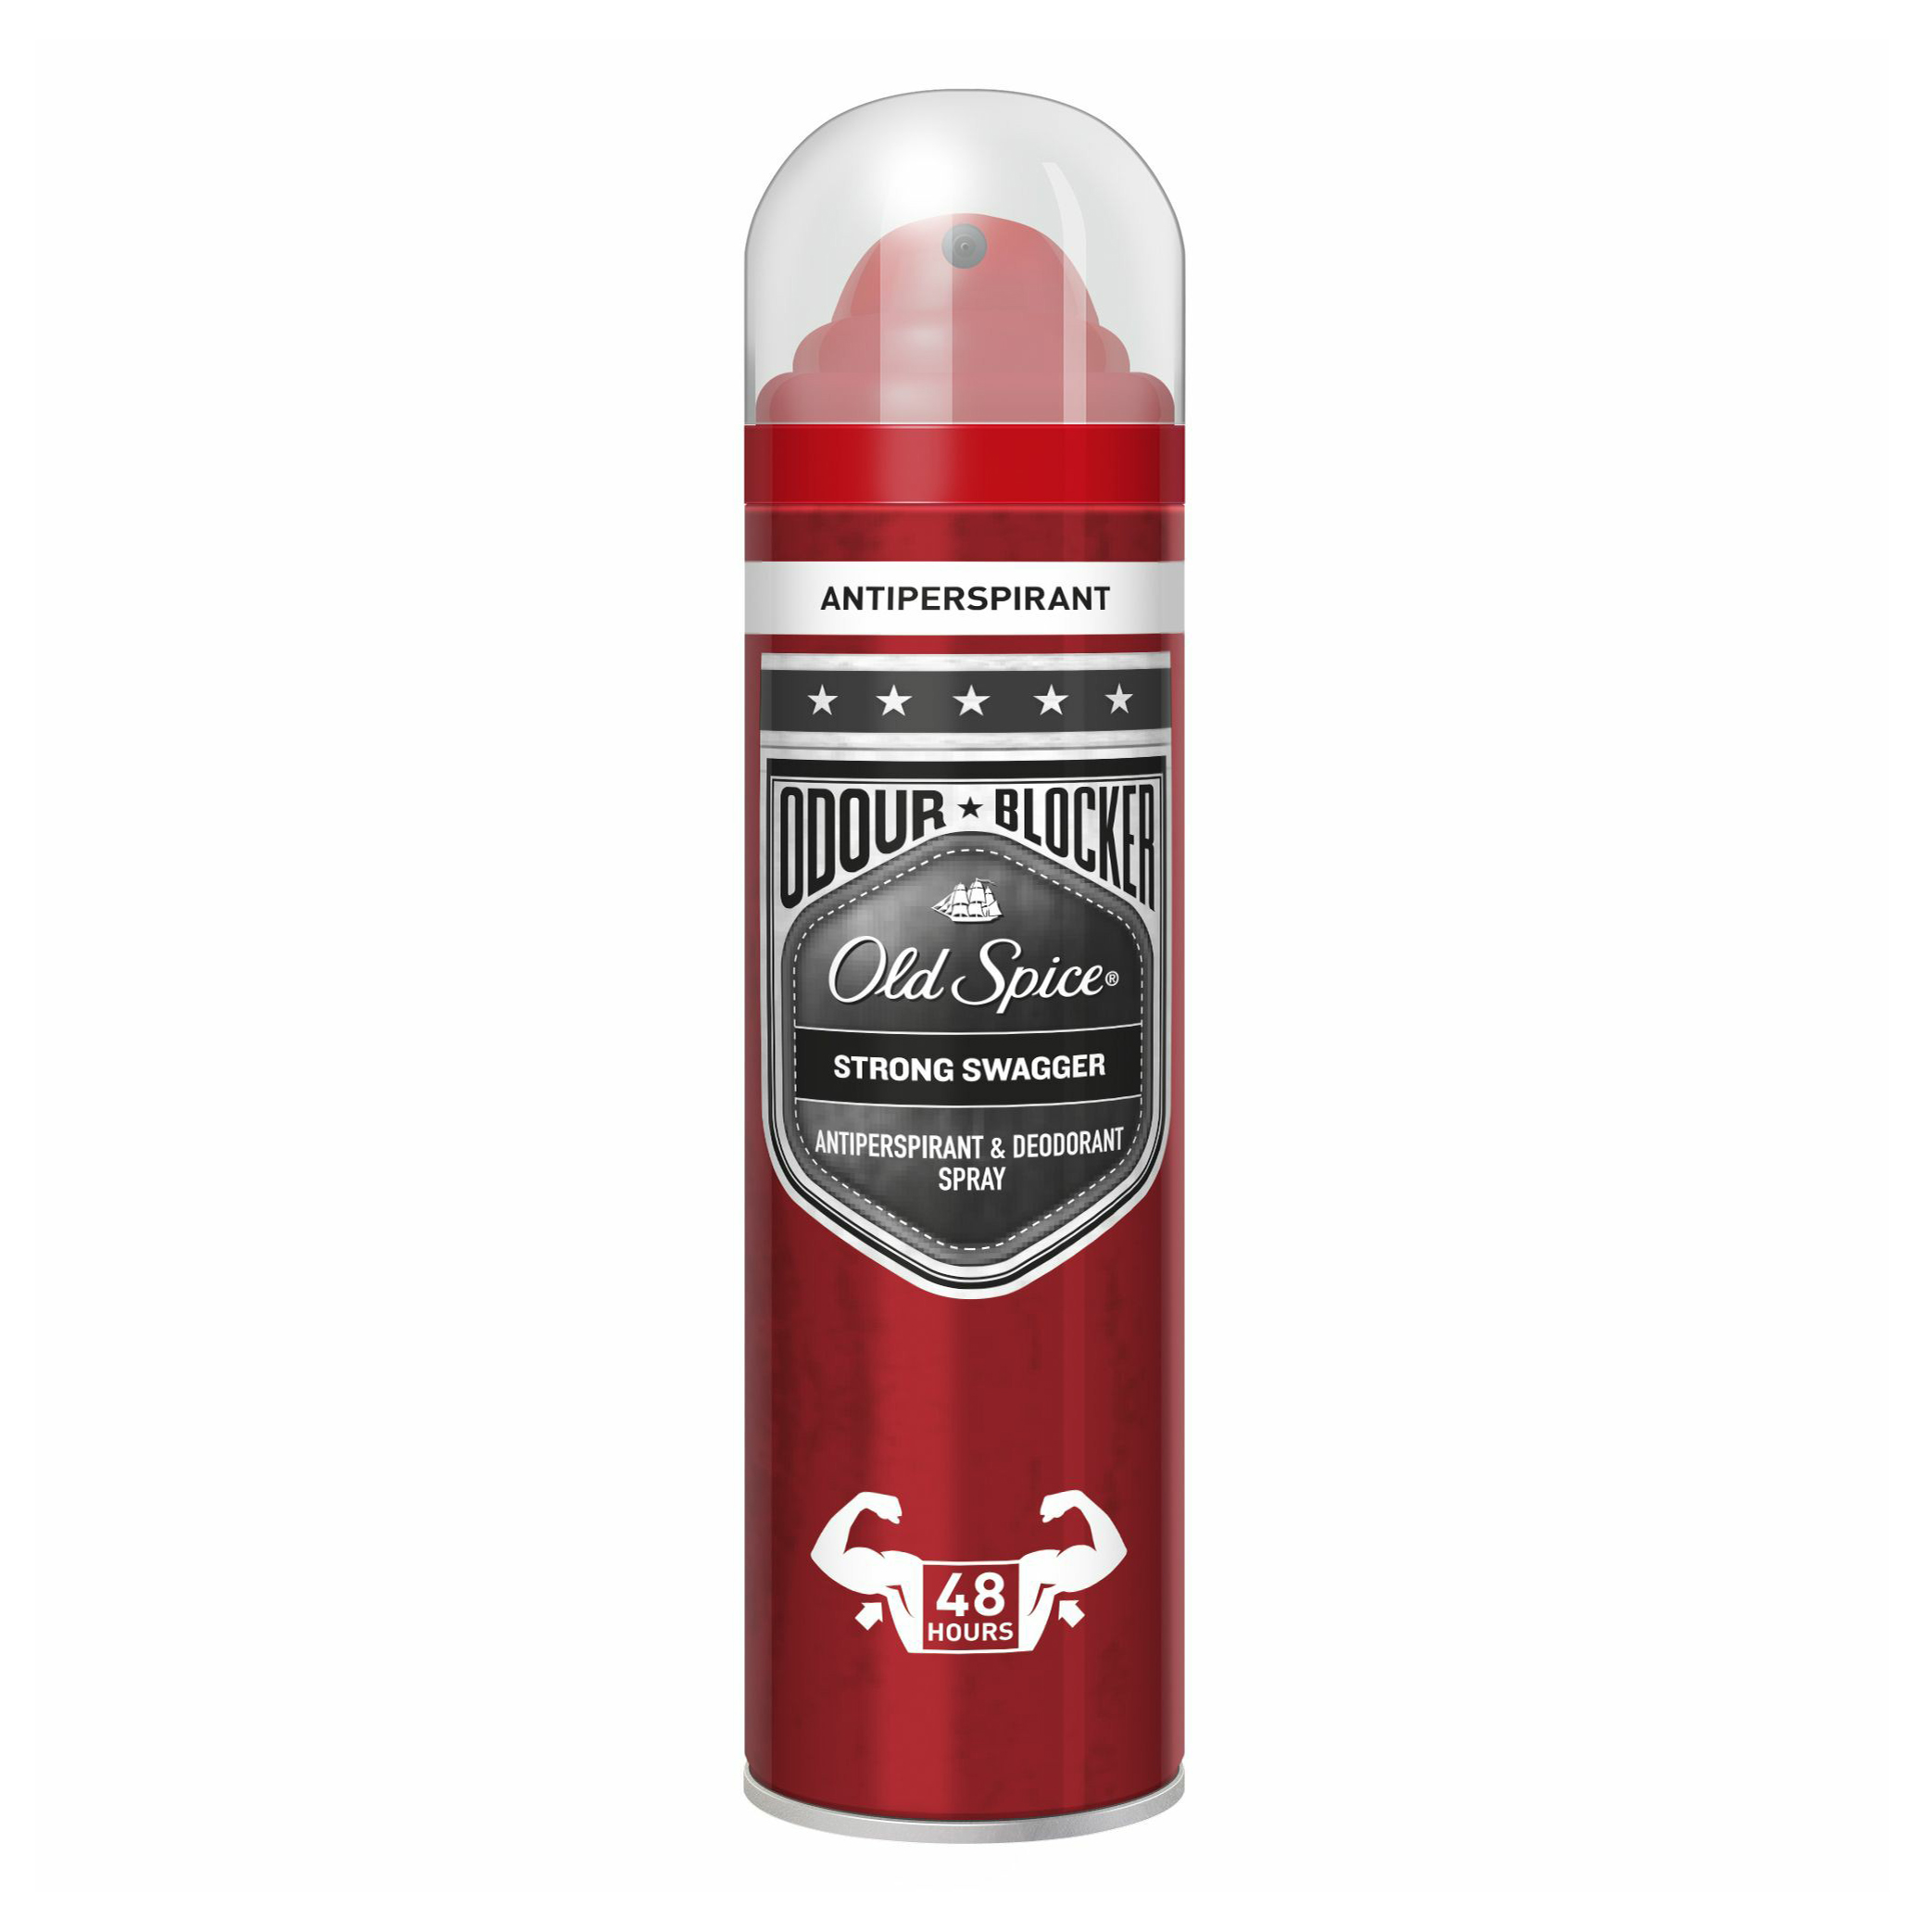 Дезодорант Old Spice Strong Swagger